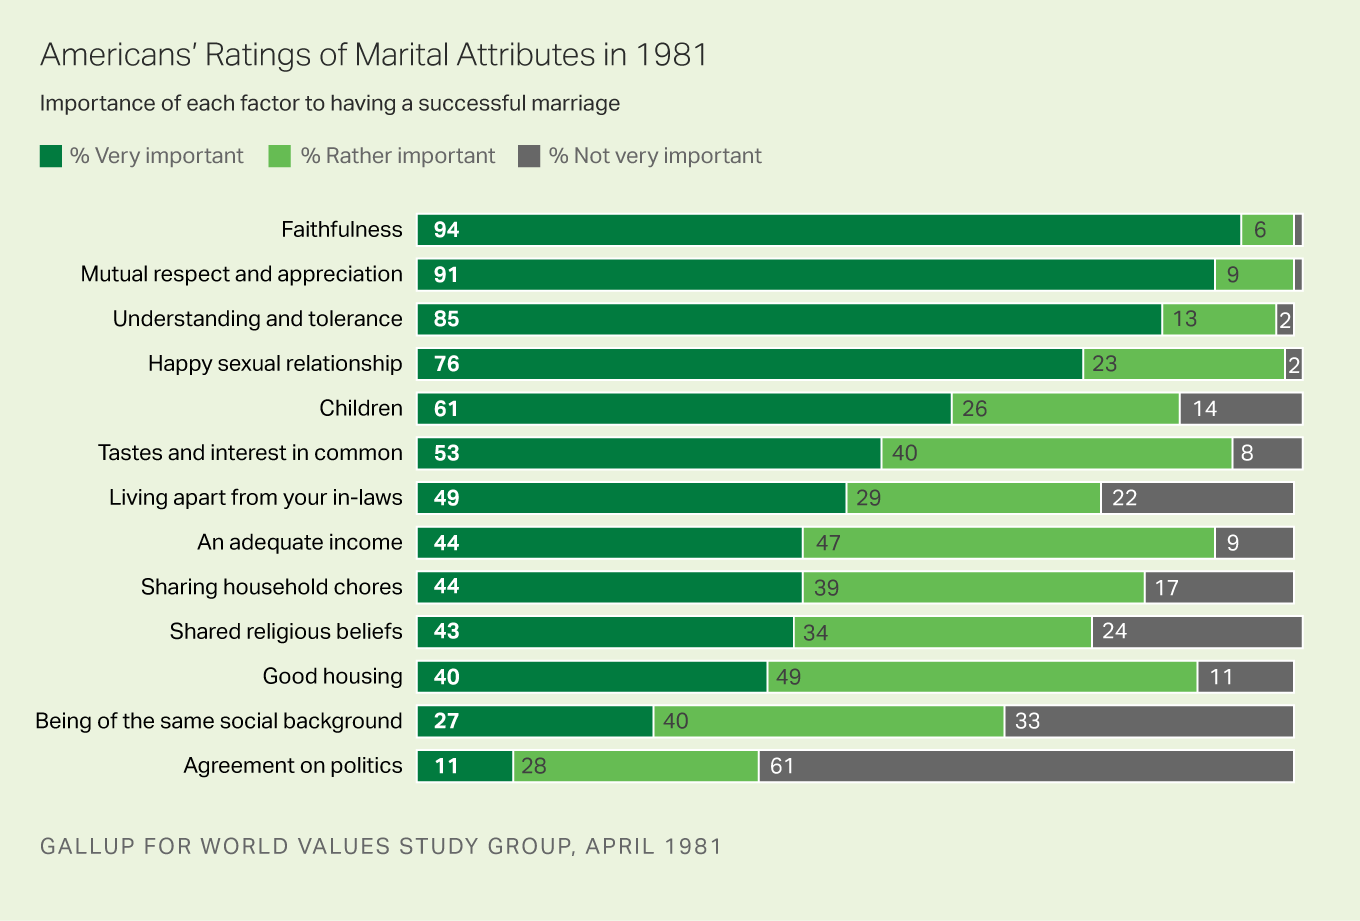 Americans' Ratings of Marital Attributes in 1981